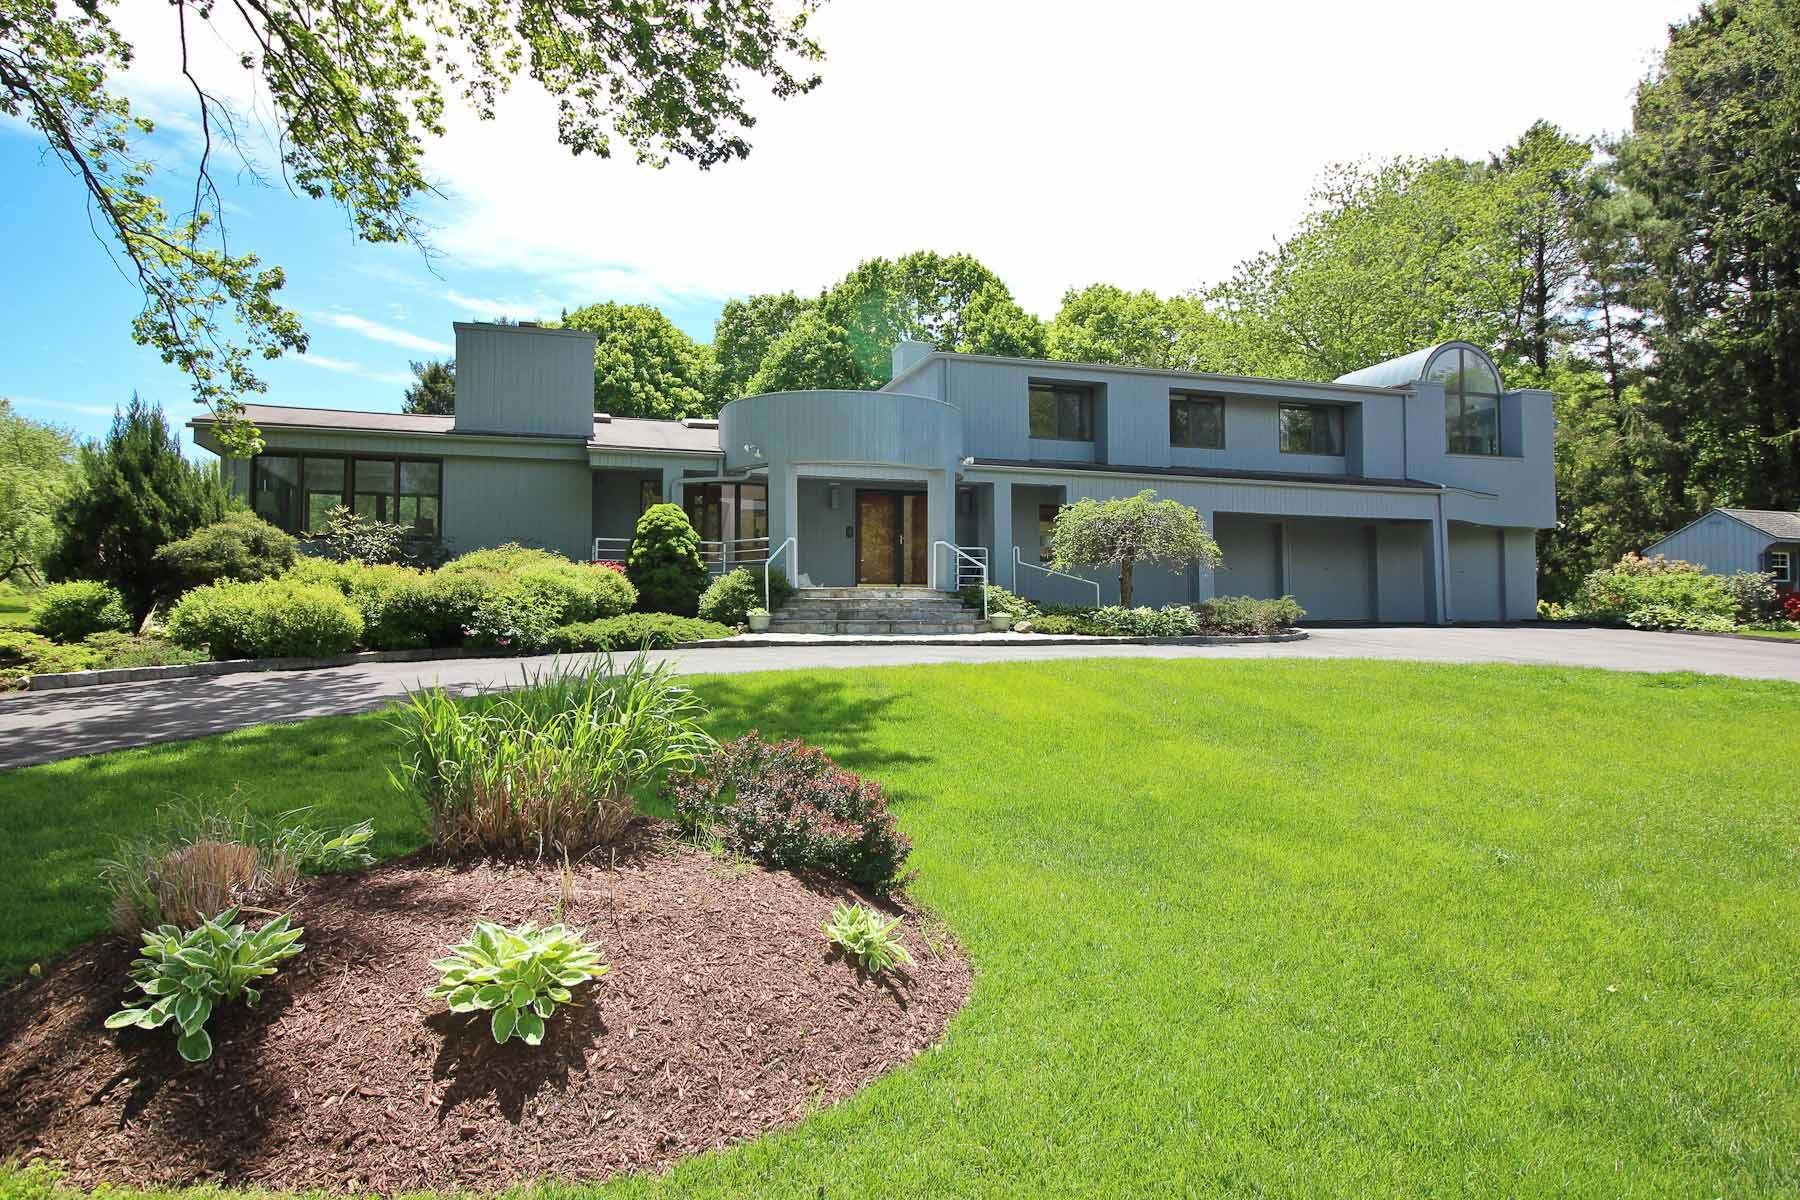 contemporary homes for sale in westport connecticut - Modern Home For Sale